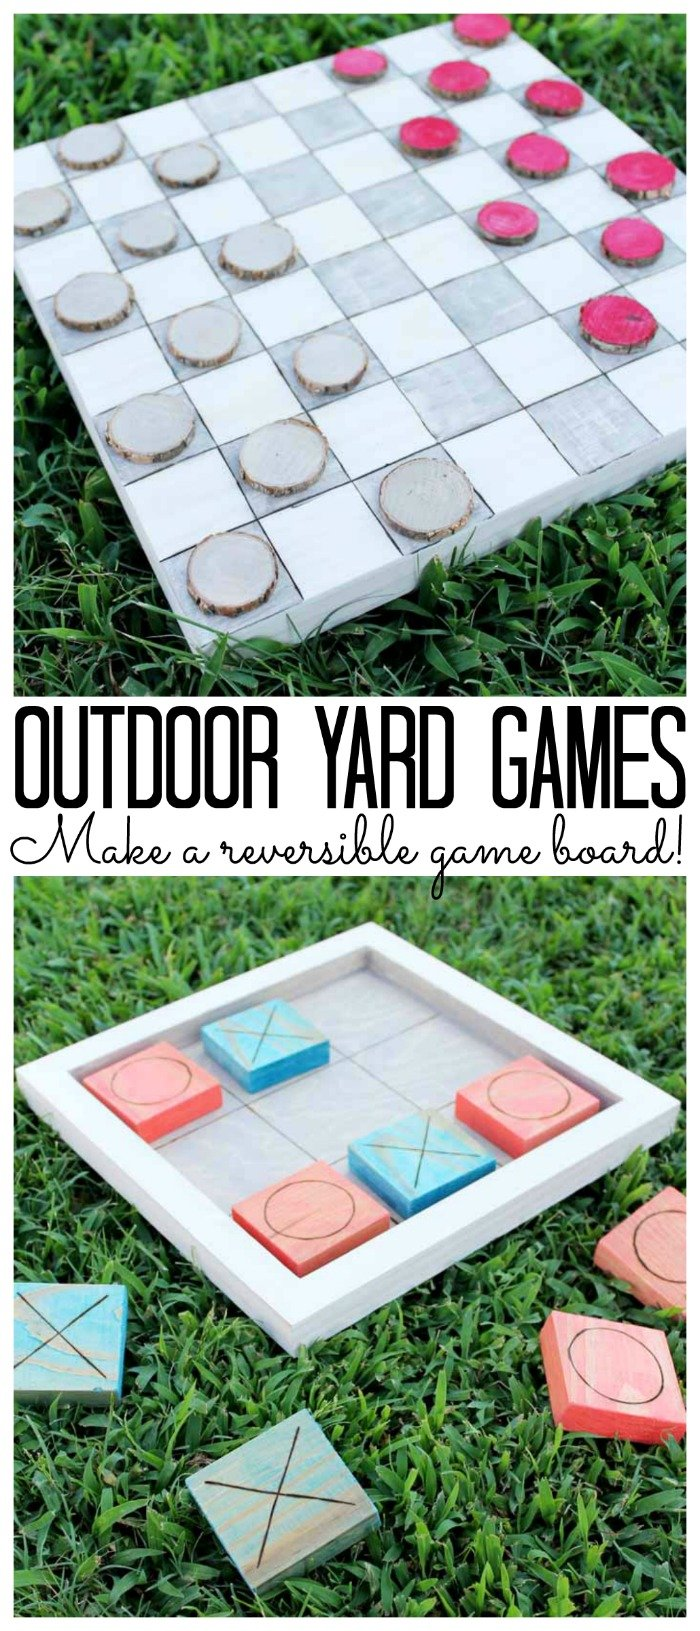 Outdoor yard games: Make a reversible game board for checkers and tic tac toe on the grass!